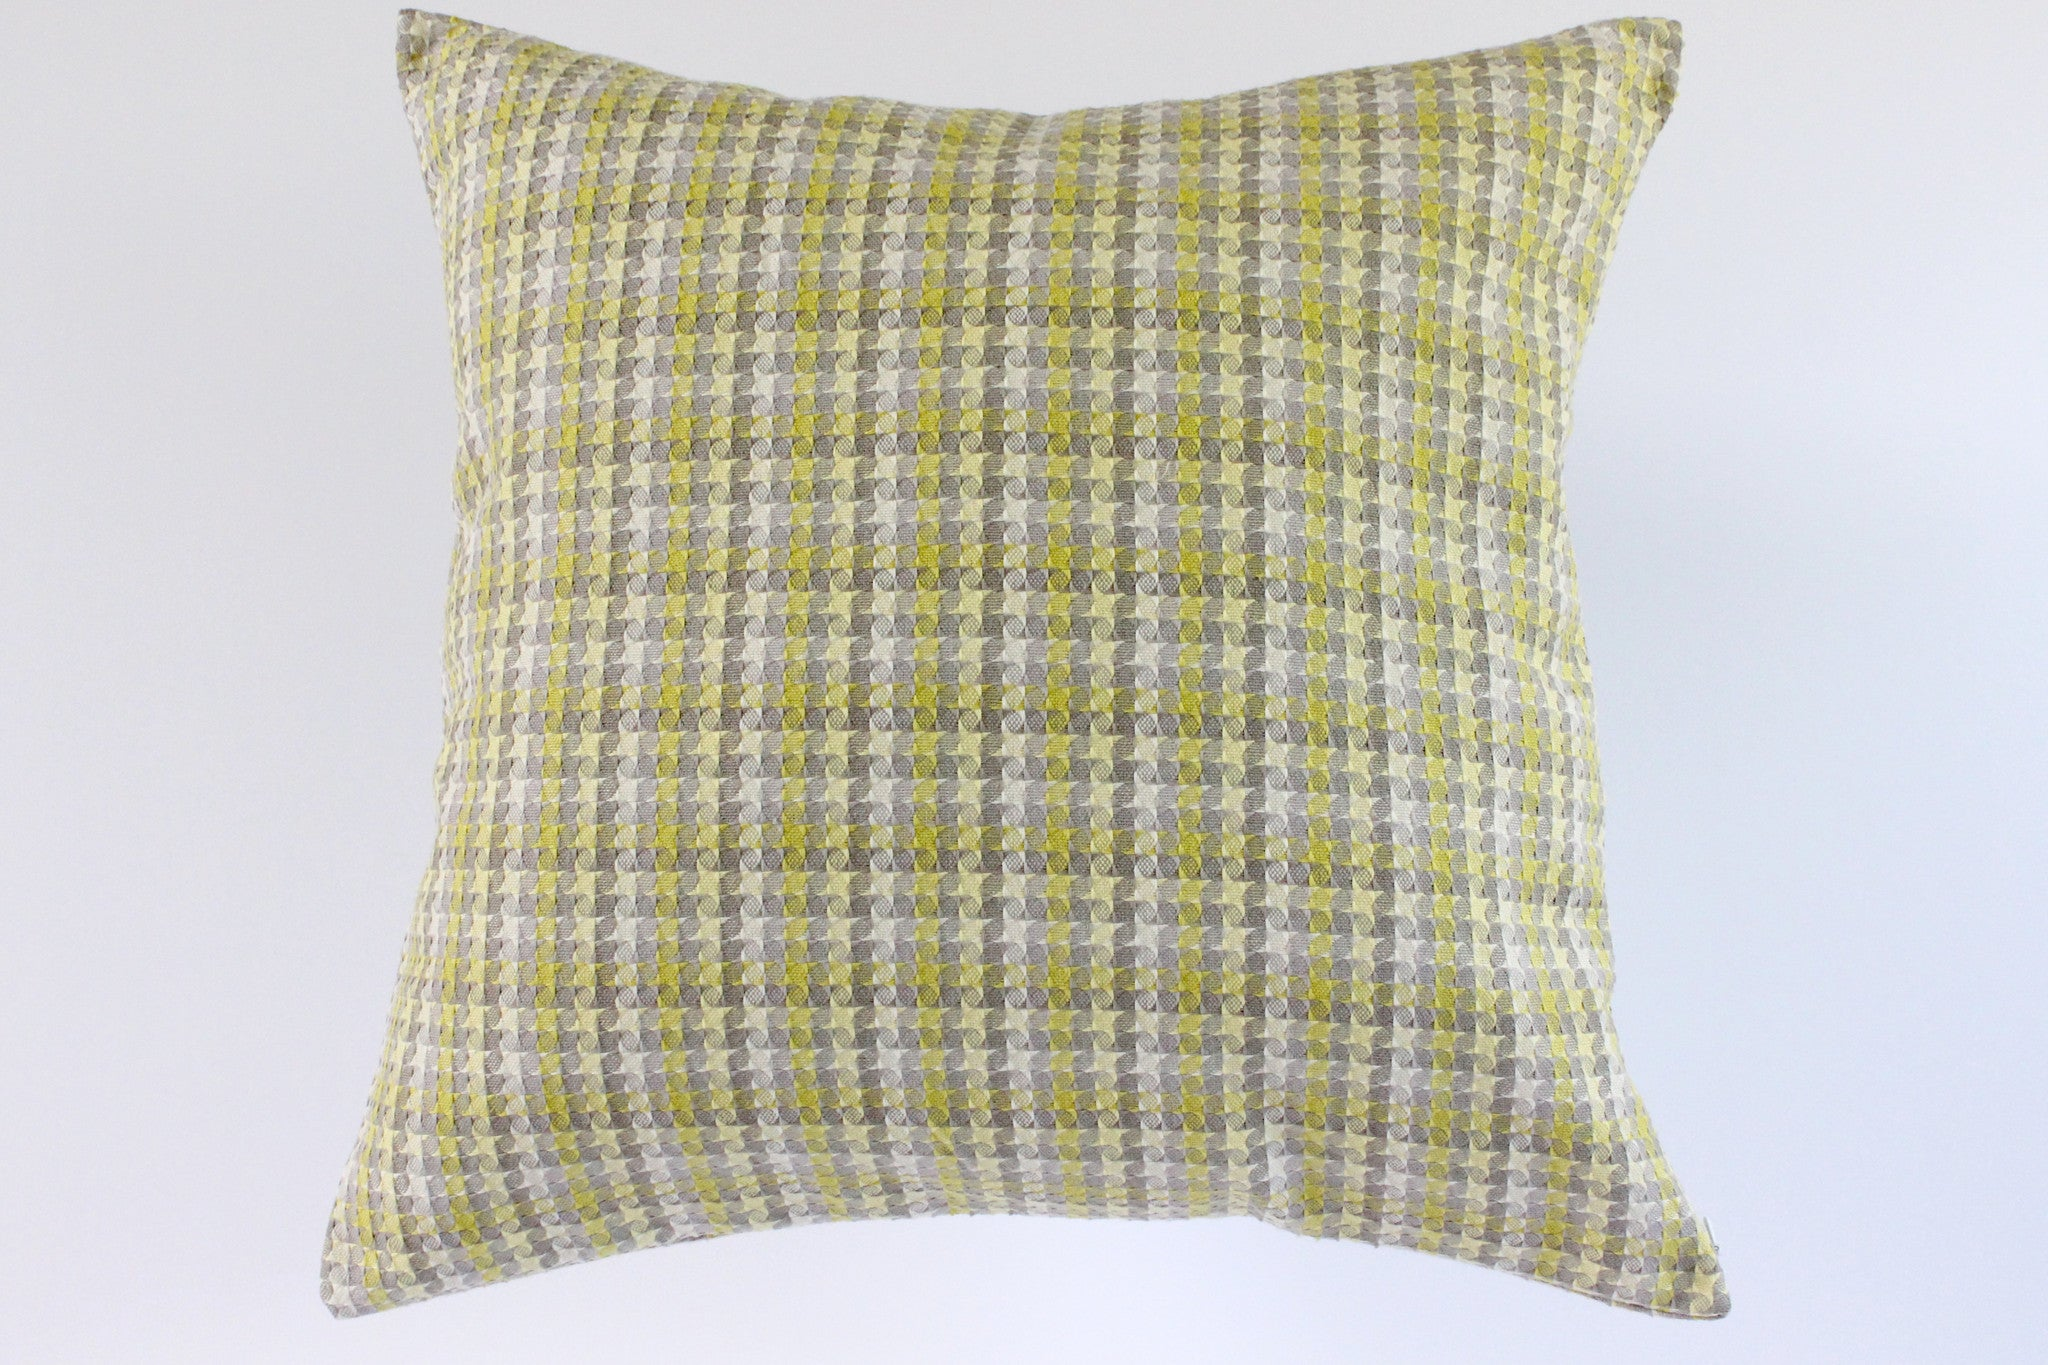 Checkered Textured Pillow